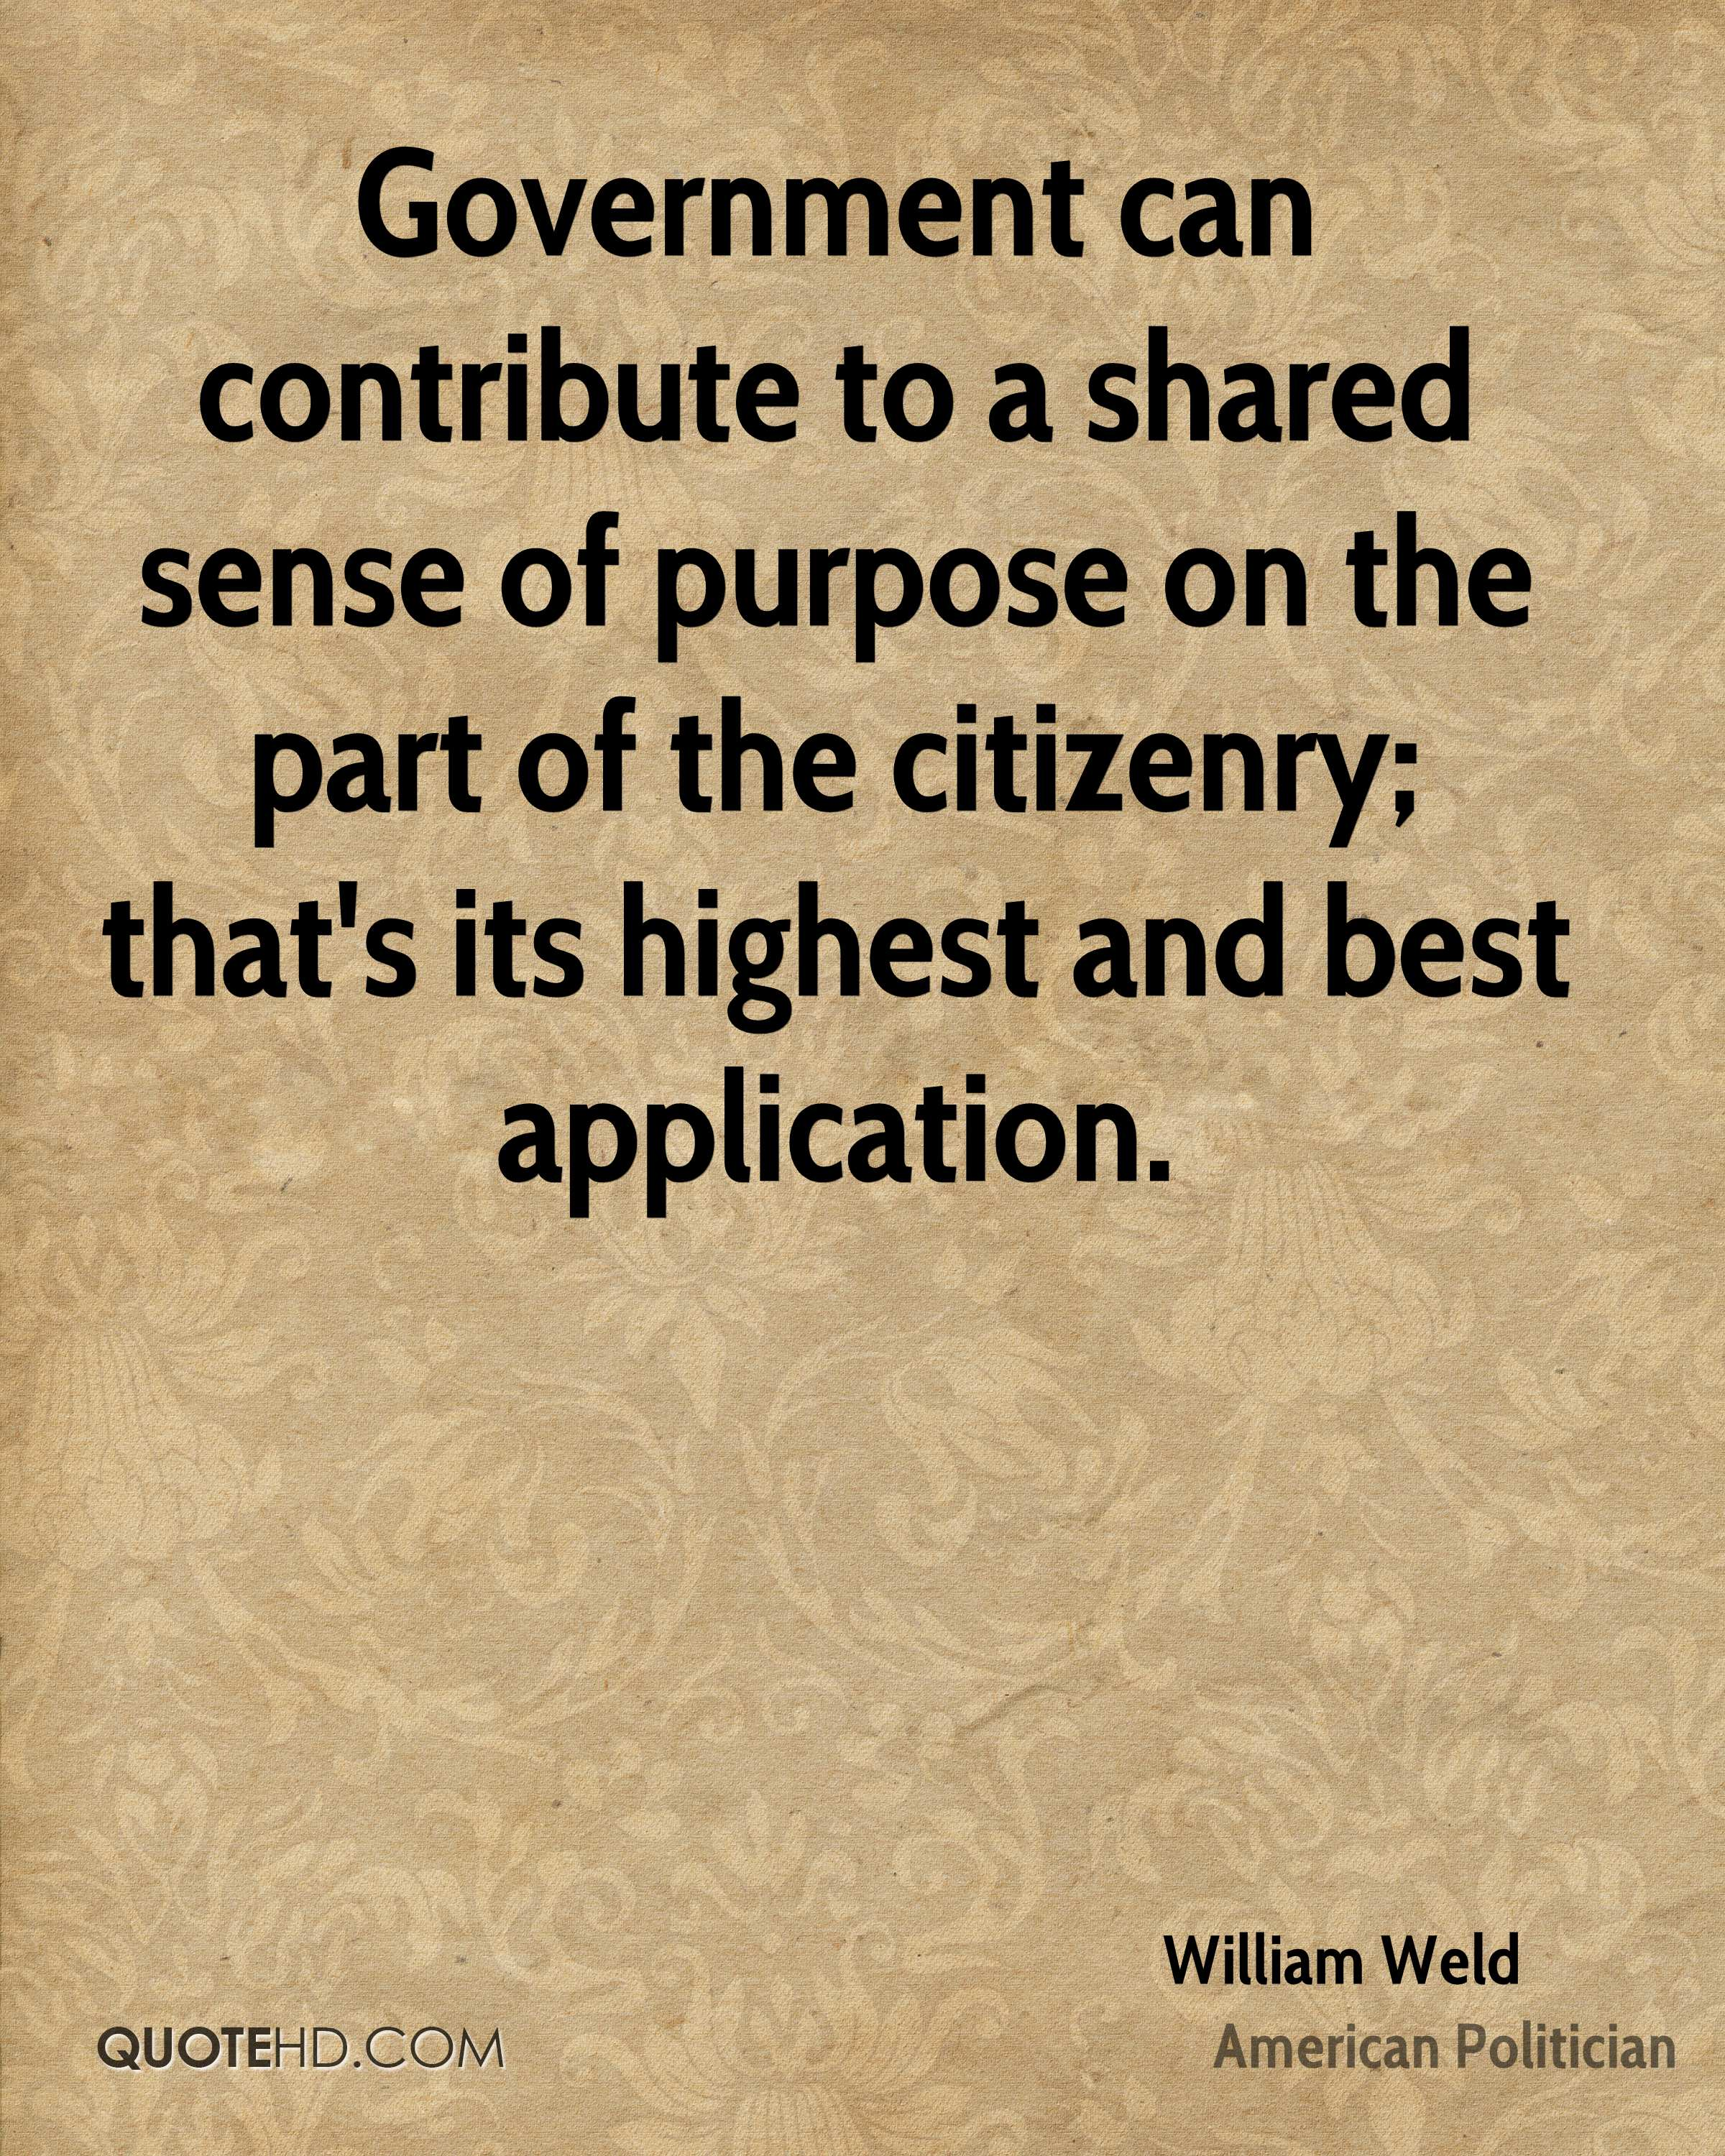 Government can contribute to a shared sense of purpose on the part of the citizenry; that's its highest and best application.